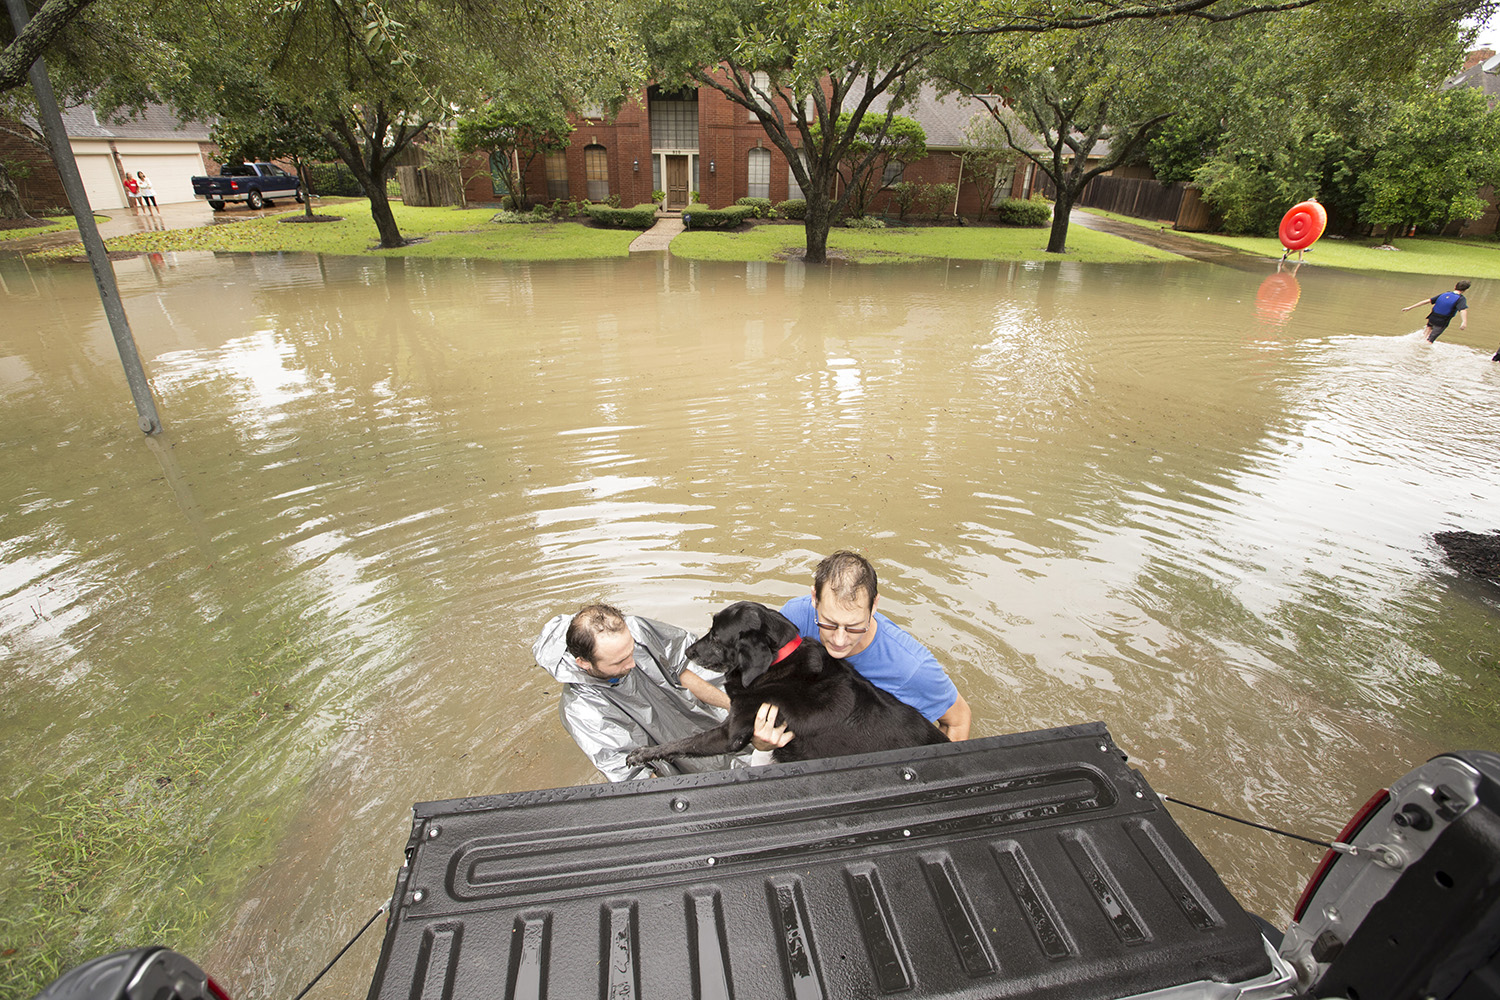 Chris Ginter, left, helps Matt McLean and his dog into his truck on Tuesday, Aug. 29, 2017. Ginter is volunteering to evacuate people from their flooded neighborhood near Buffalo Bayou.